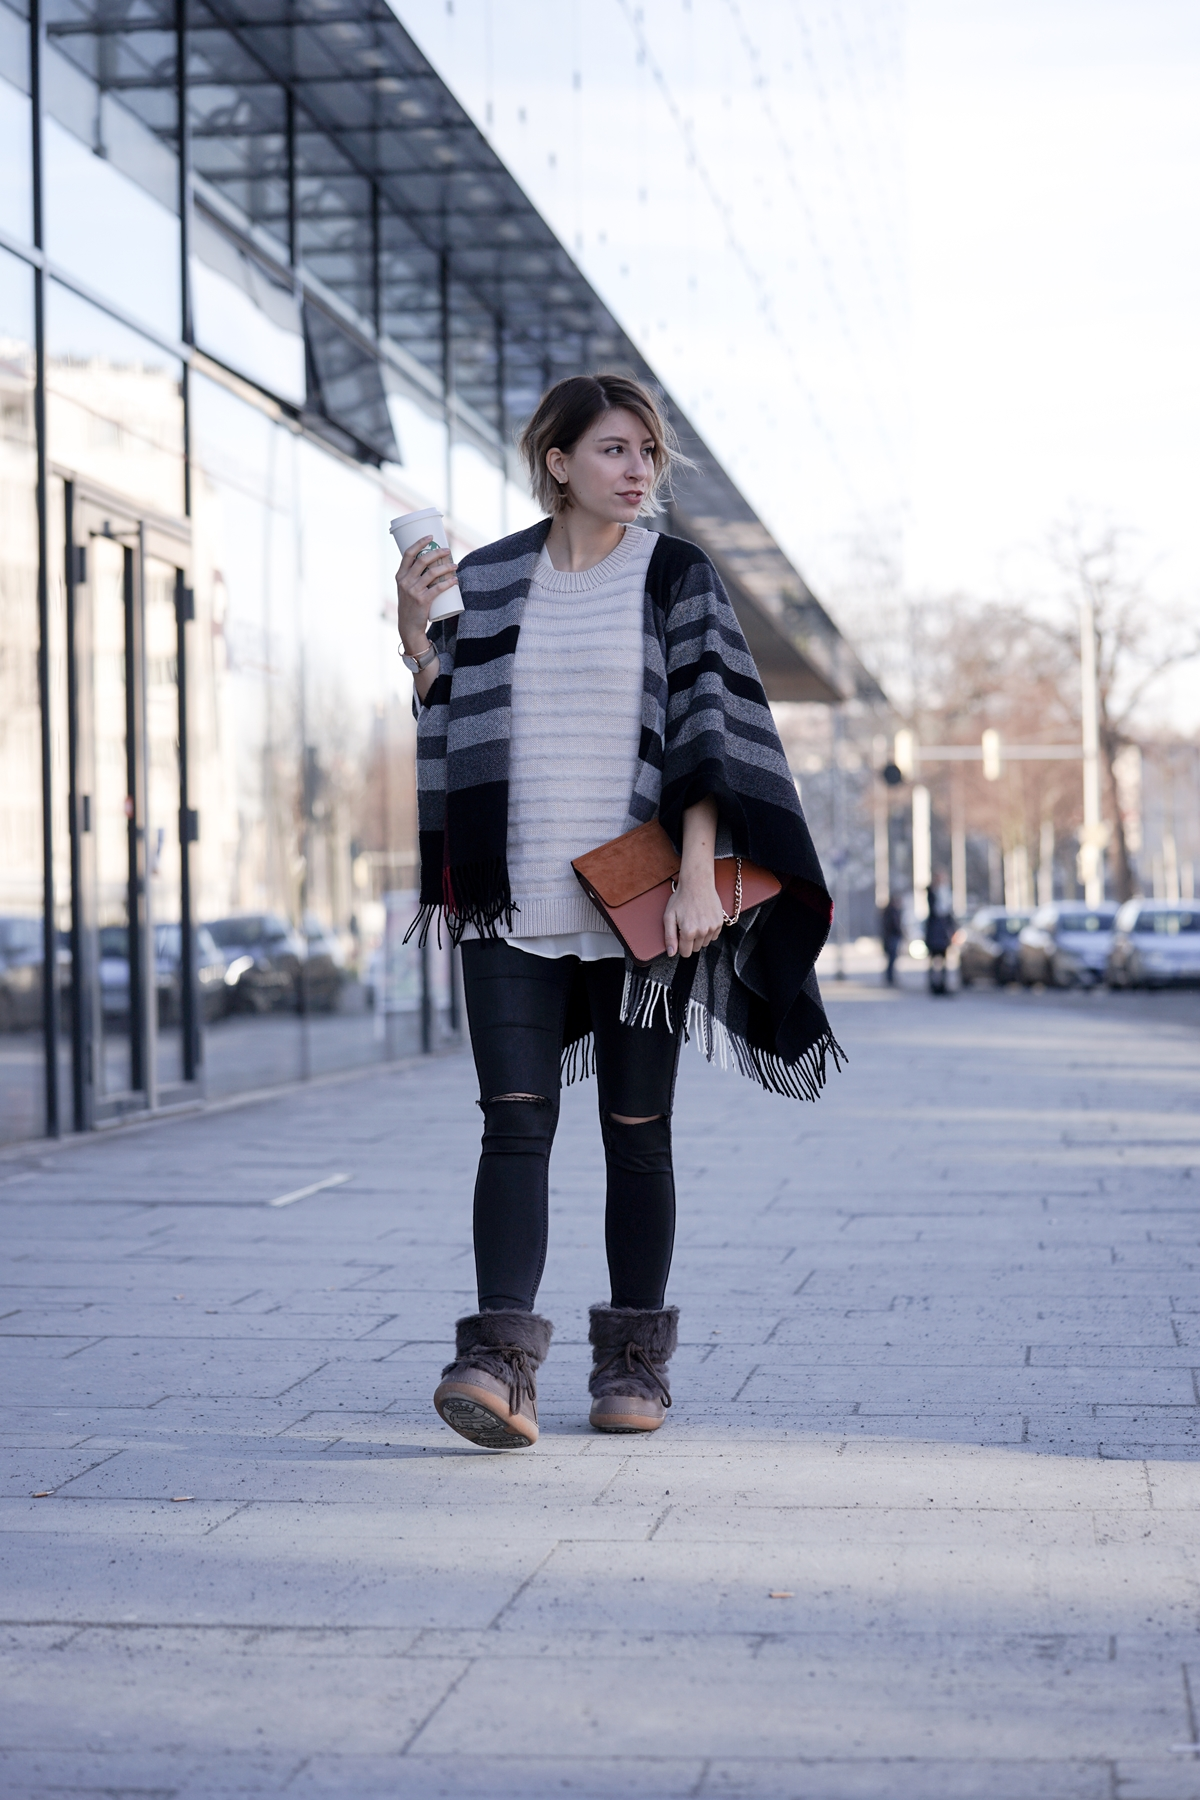 Outfit mit INUIKII Boots, COS Pullover, FRAAS Cape und Jeans | Mode, Look, WInter, Stiefel, Snowboots |Glasschuh.com Blog aus Hannover von Lea Christin